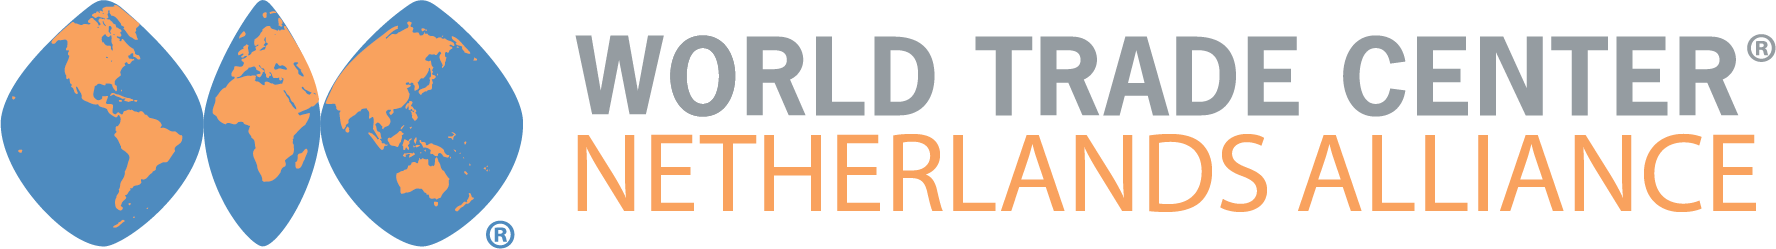 Logo WTC Netherlands Alliance